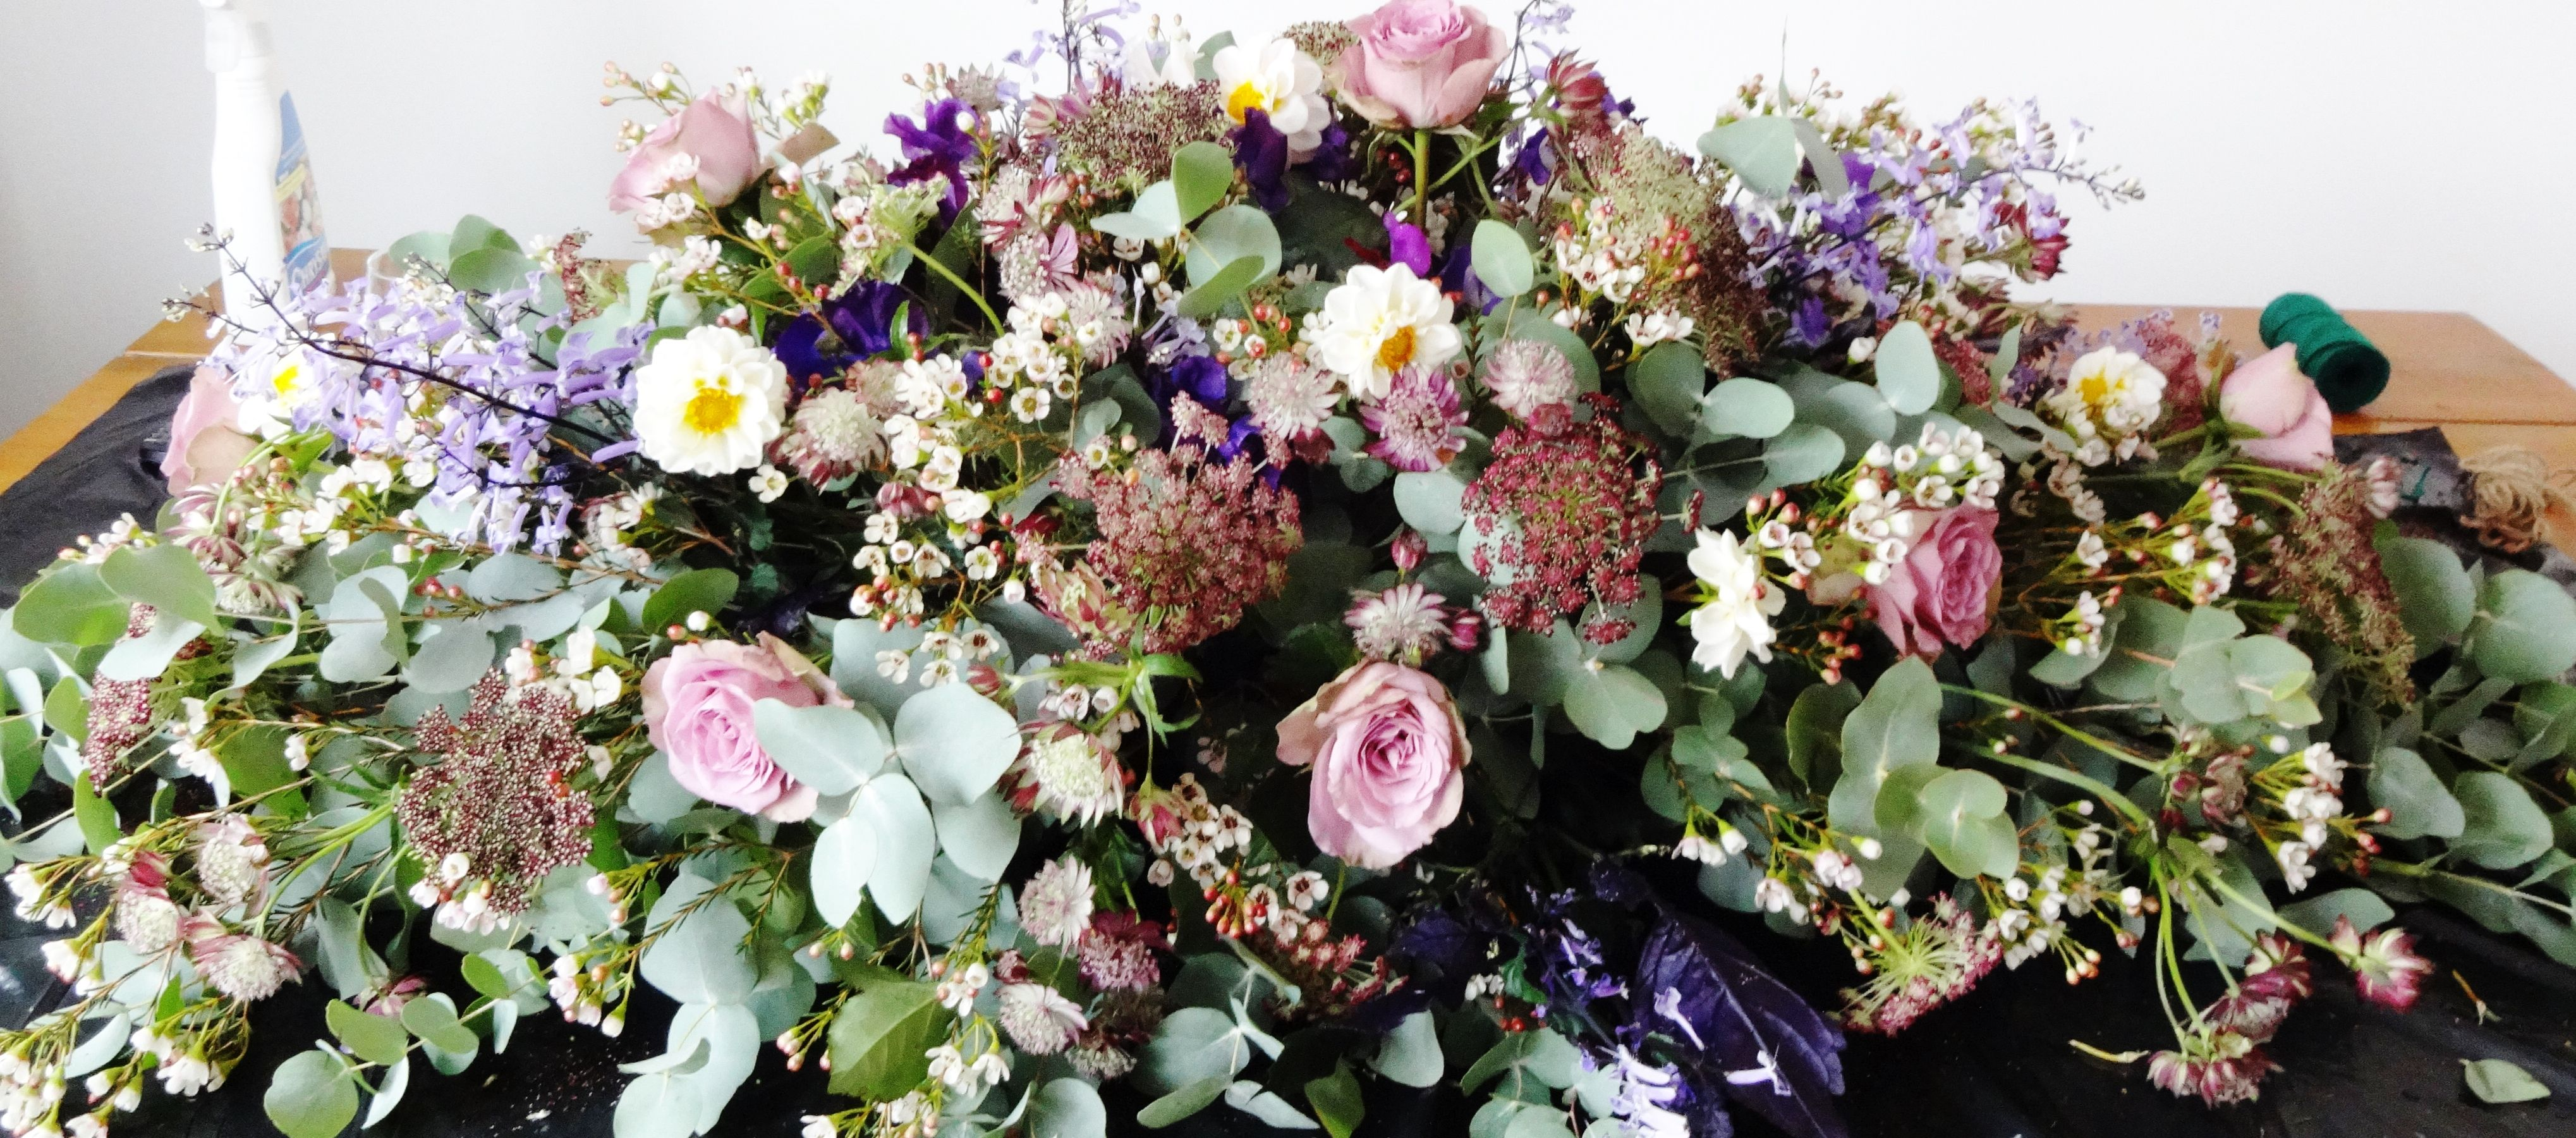 English Garden Coffin Spray Holly Cadogan Flowers Casket Flowers Funeral Flowers Remembrance Flowers